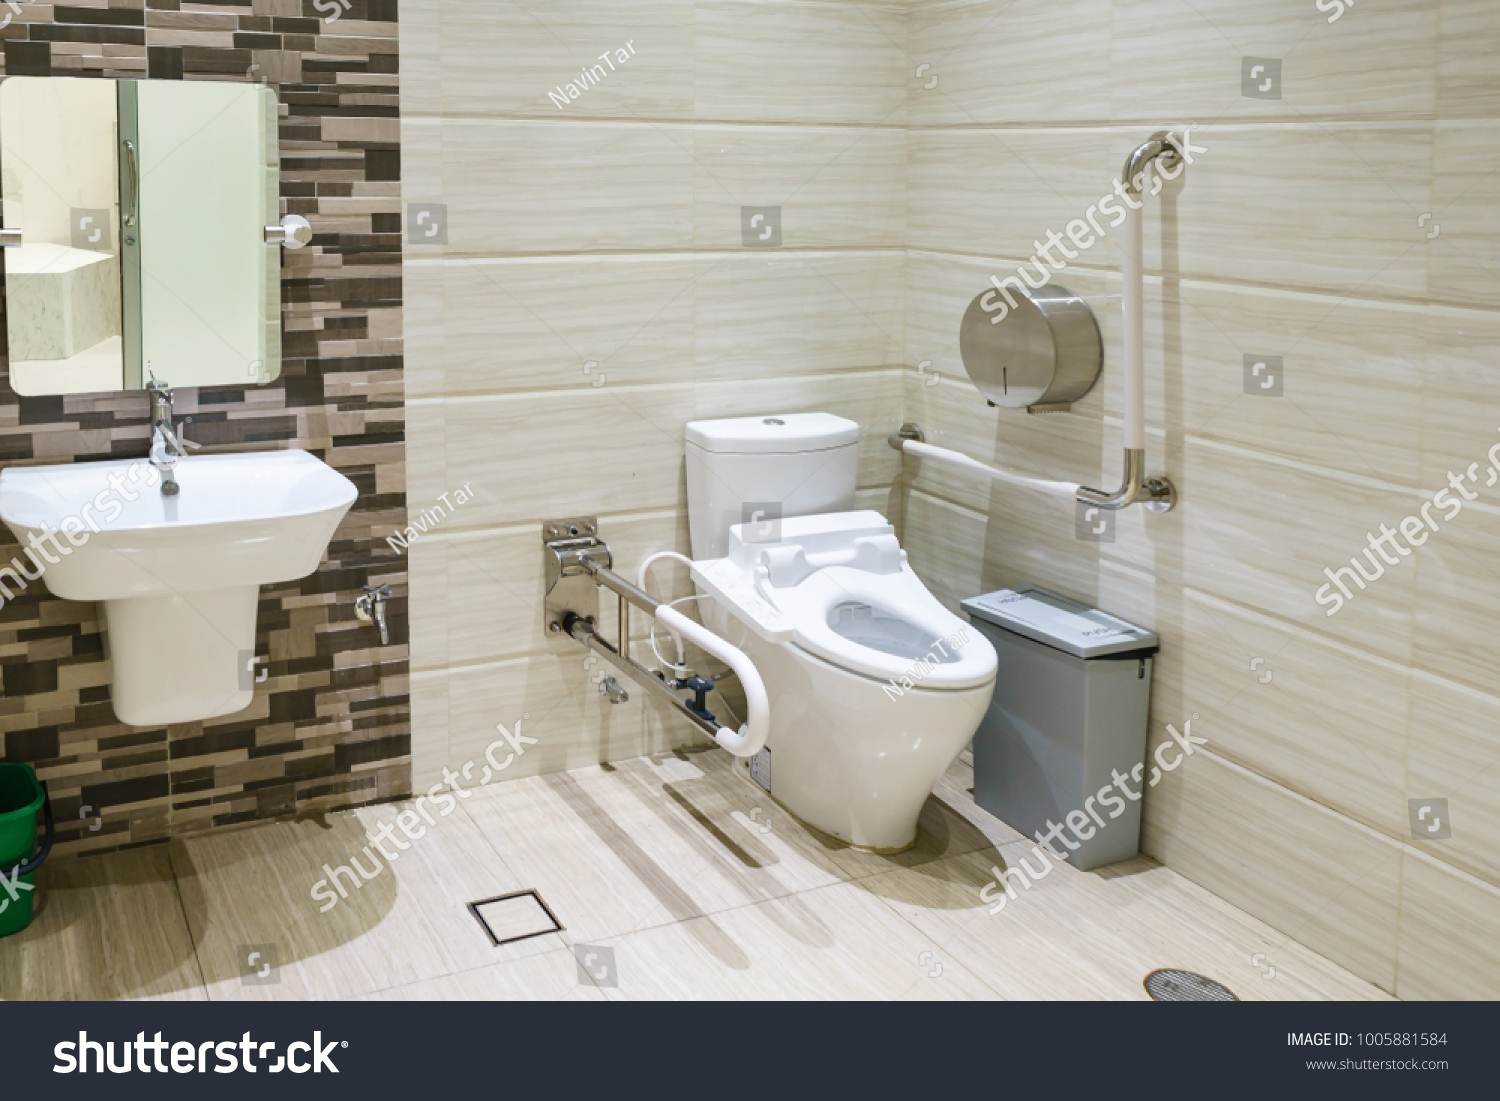 Interior Bathroom Disabled Elderly People Handrail Stock Photo ...